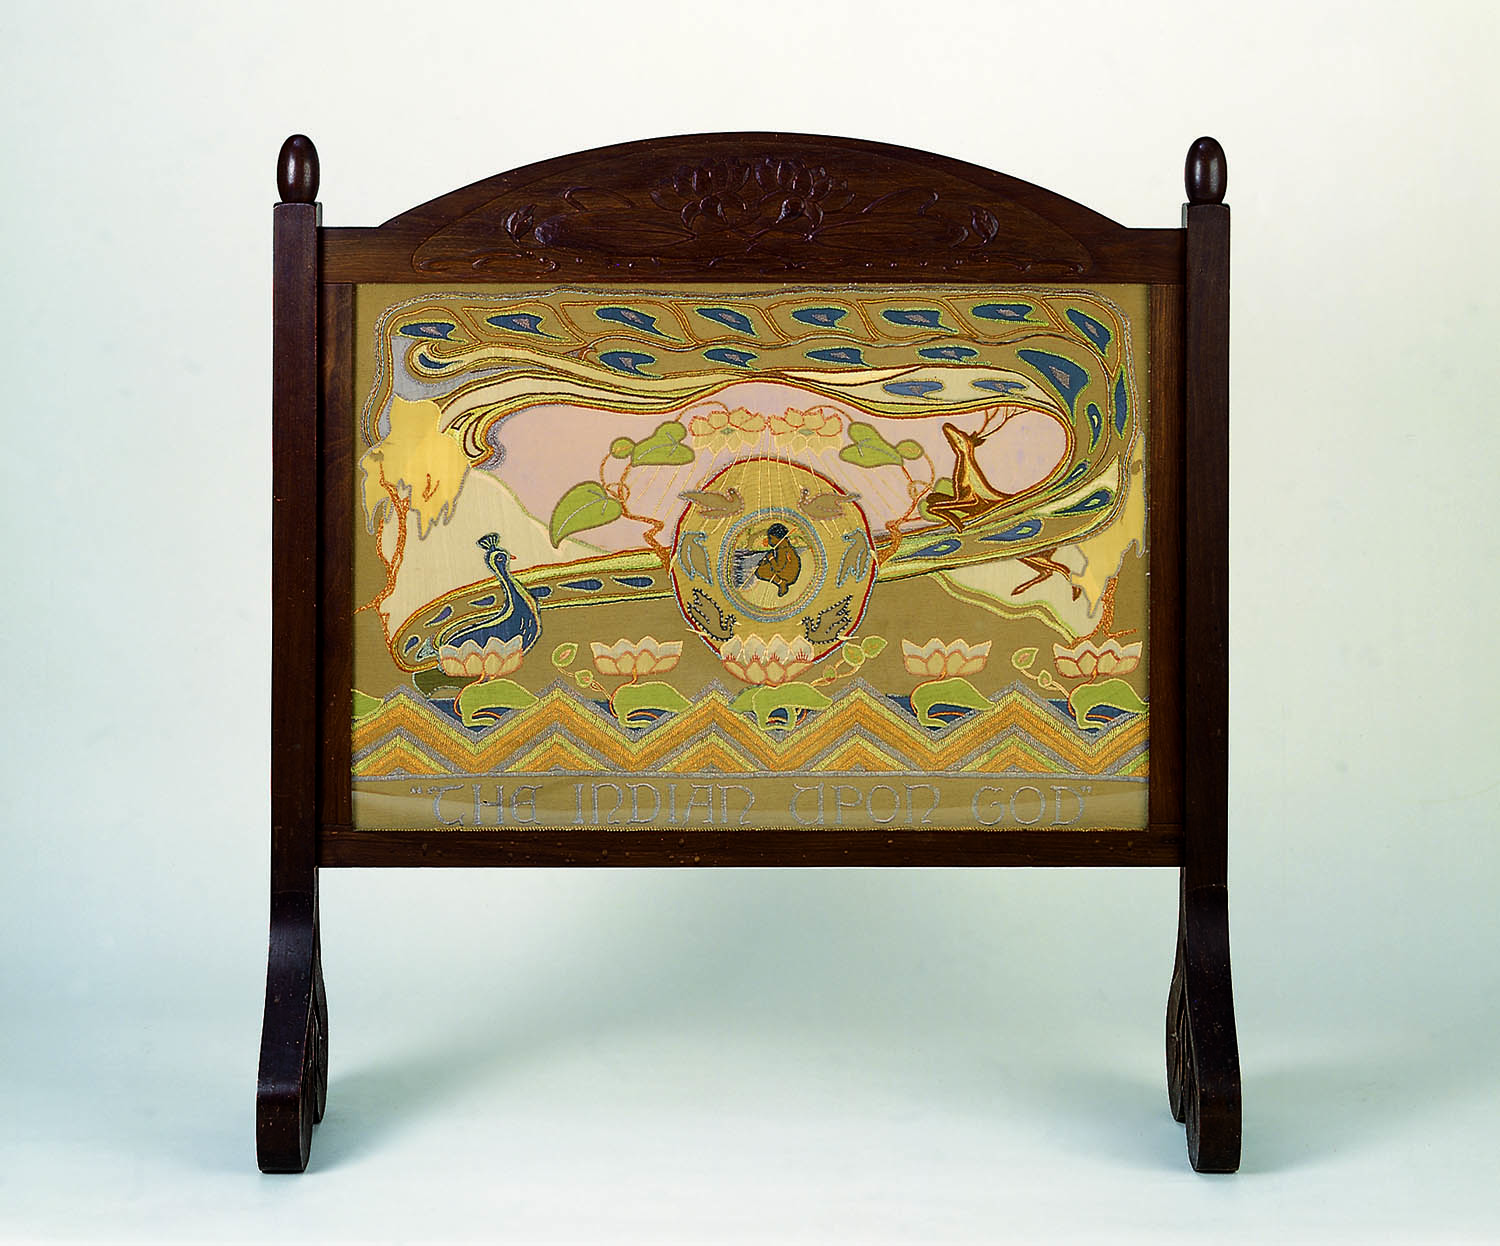 Mary P. Harris, designer/embroiderer,Australia, 1891 ‑ 1978 and Edwin Newsham, Australia, 1891 ‑ 1989, The Indian upon God fire screen, 1929, Adelaide,silk & wool embroidery on linen, carved manchurian oak frame,120x110x30.5cm.South Australian Government Grant 1980,Art Gallery of South Australia, Adelaide.8011A213A